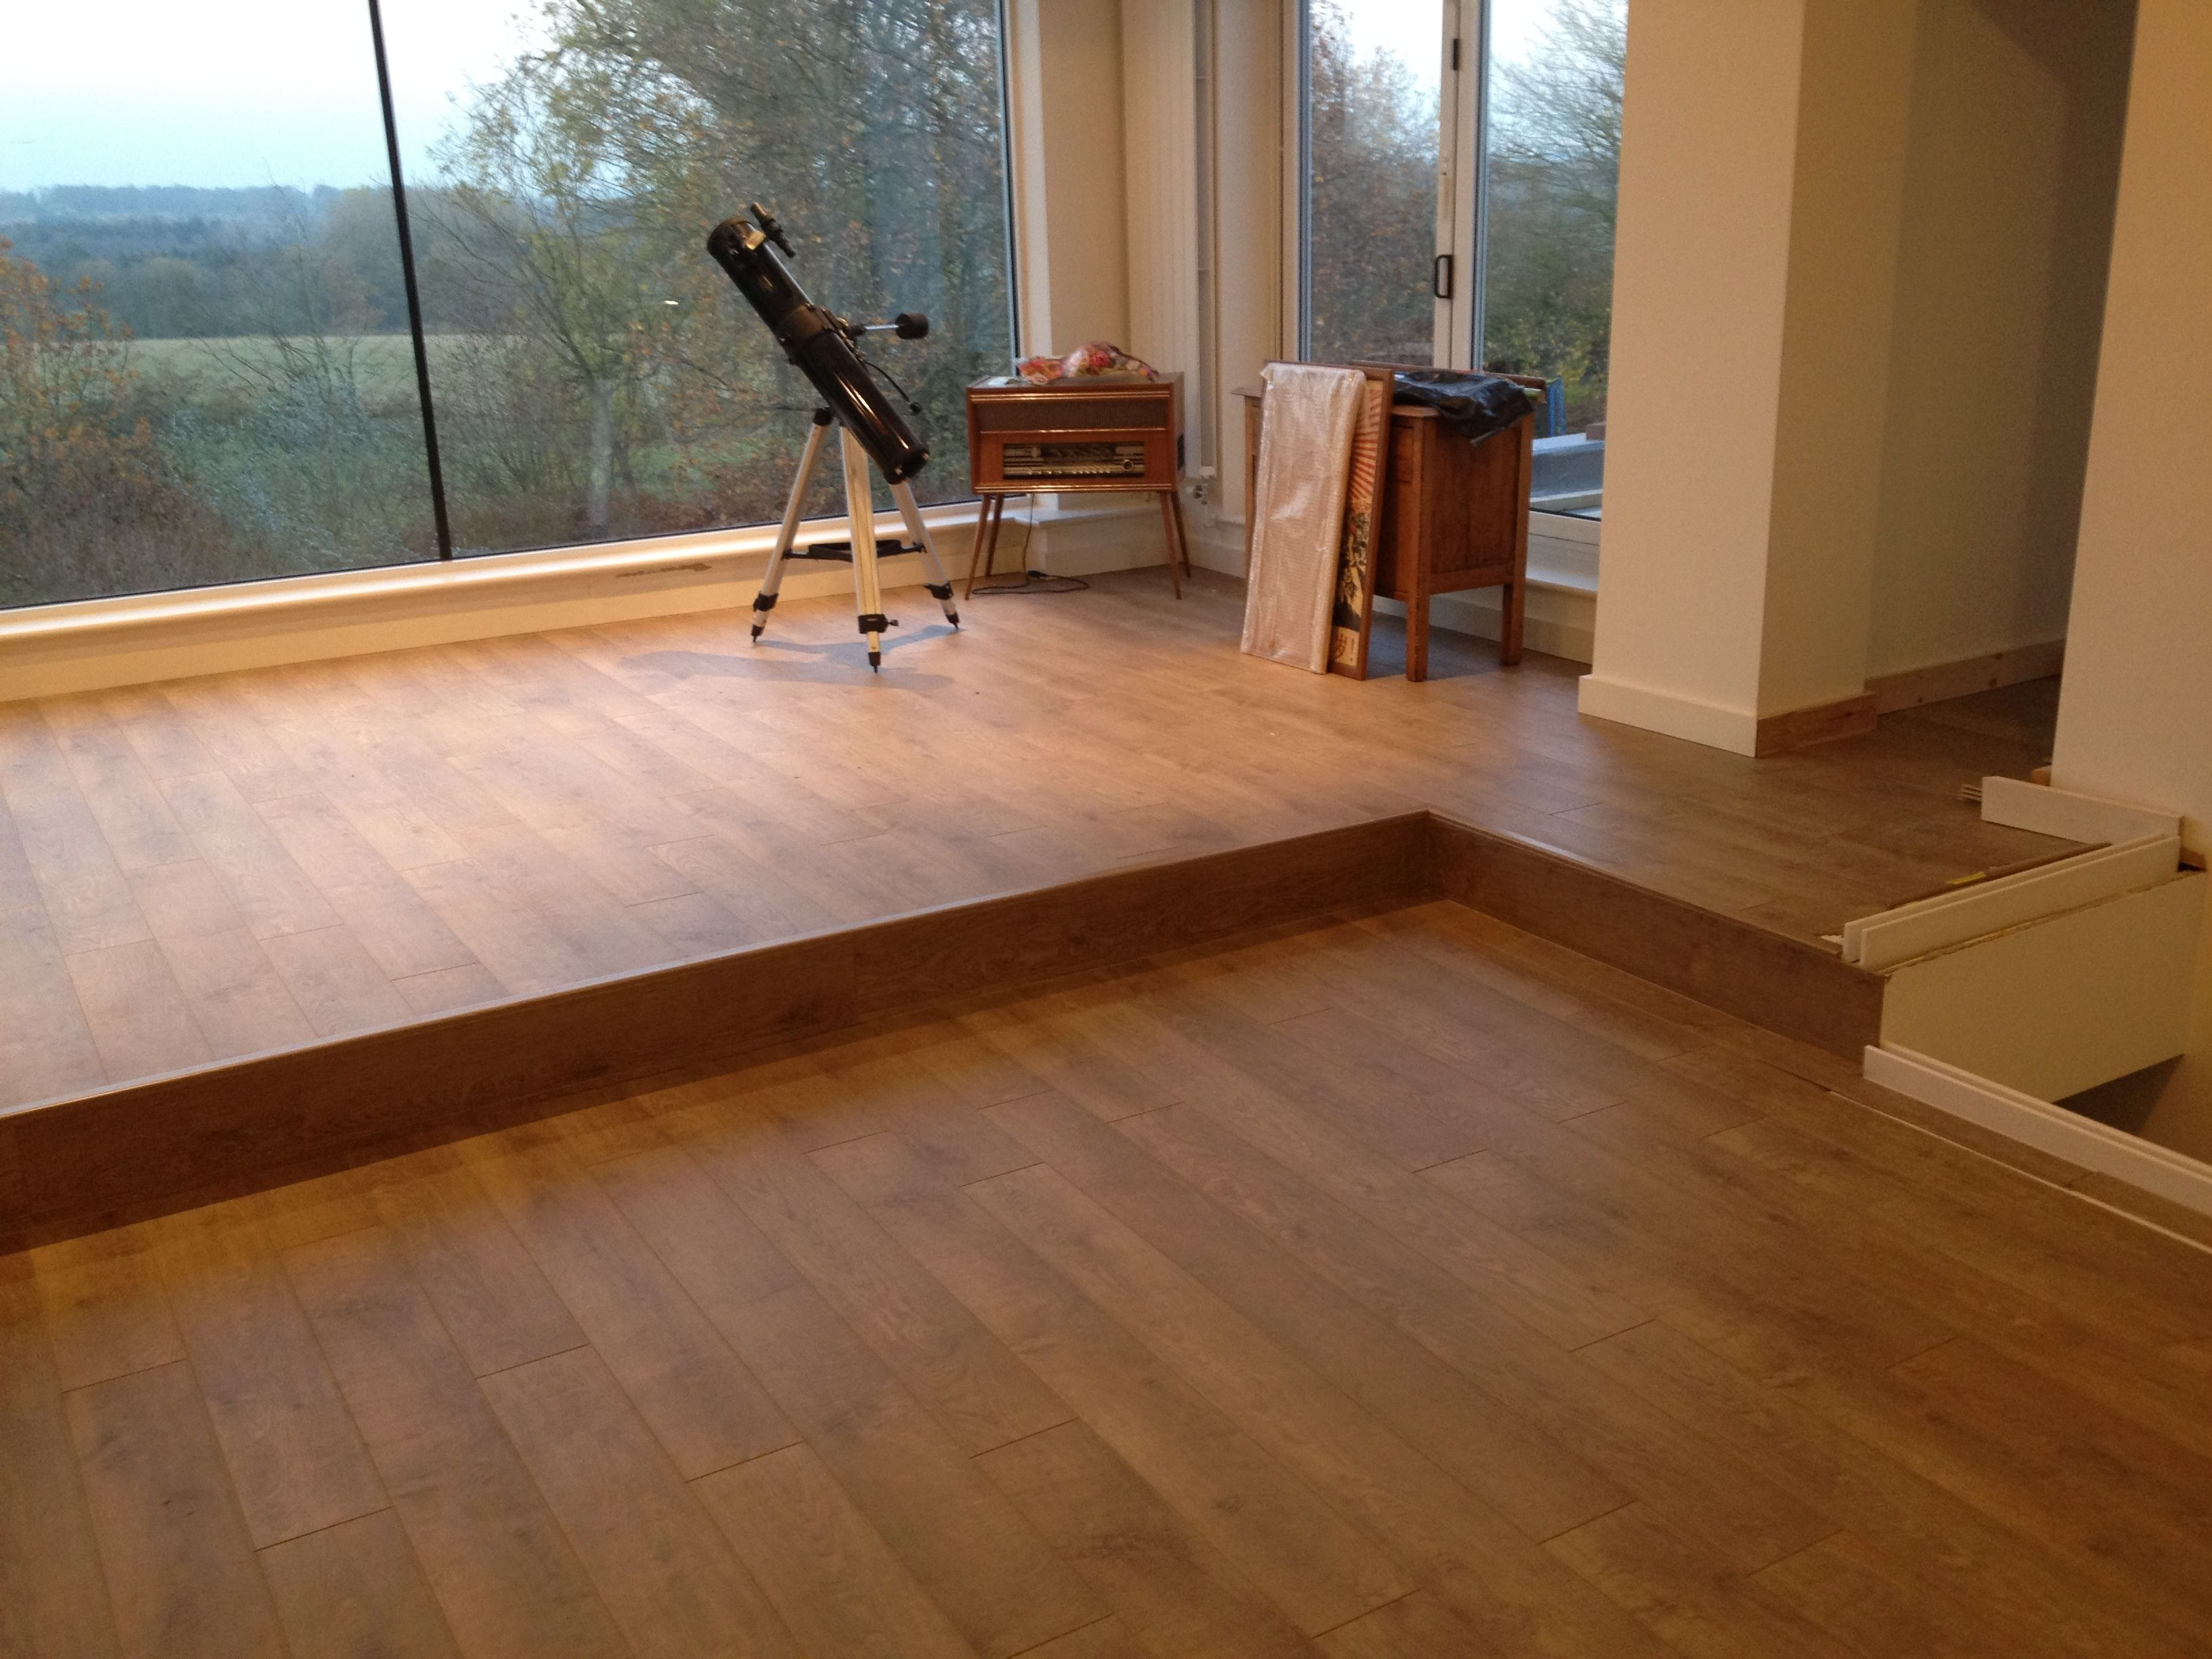 Most Durable Hardwood Floor Will Make Your House Appears With Awe Laminate Flooring Best Laminate Flooring